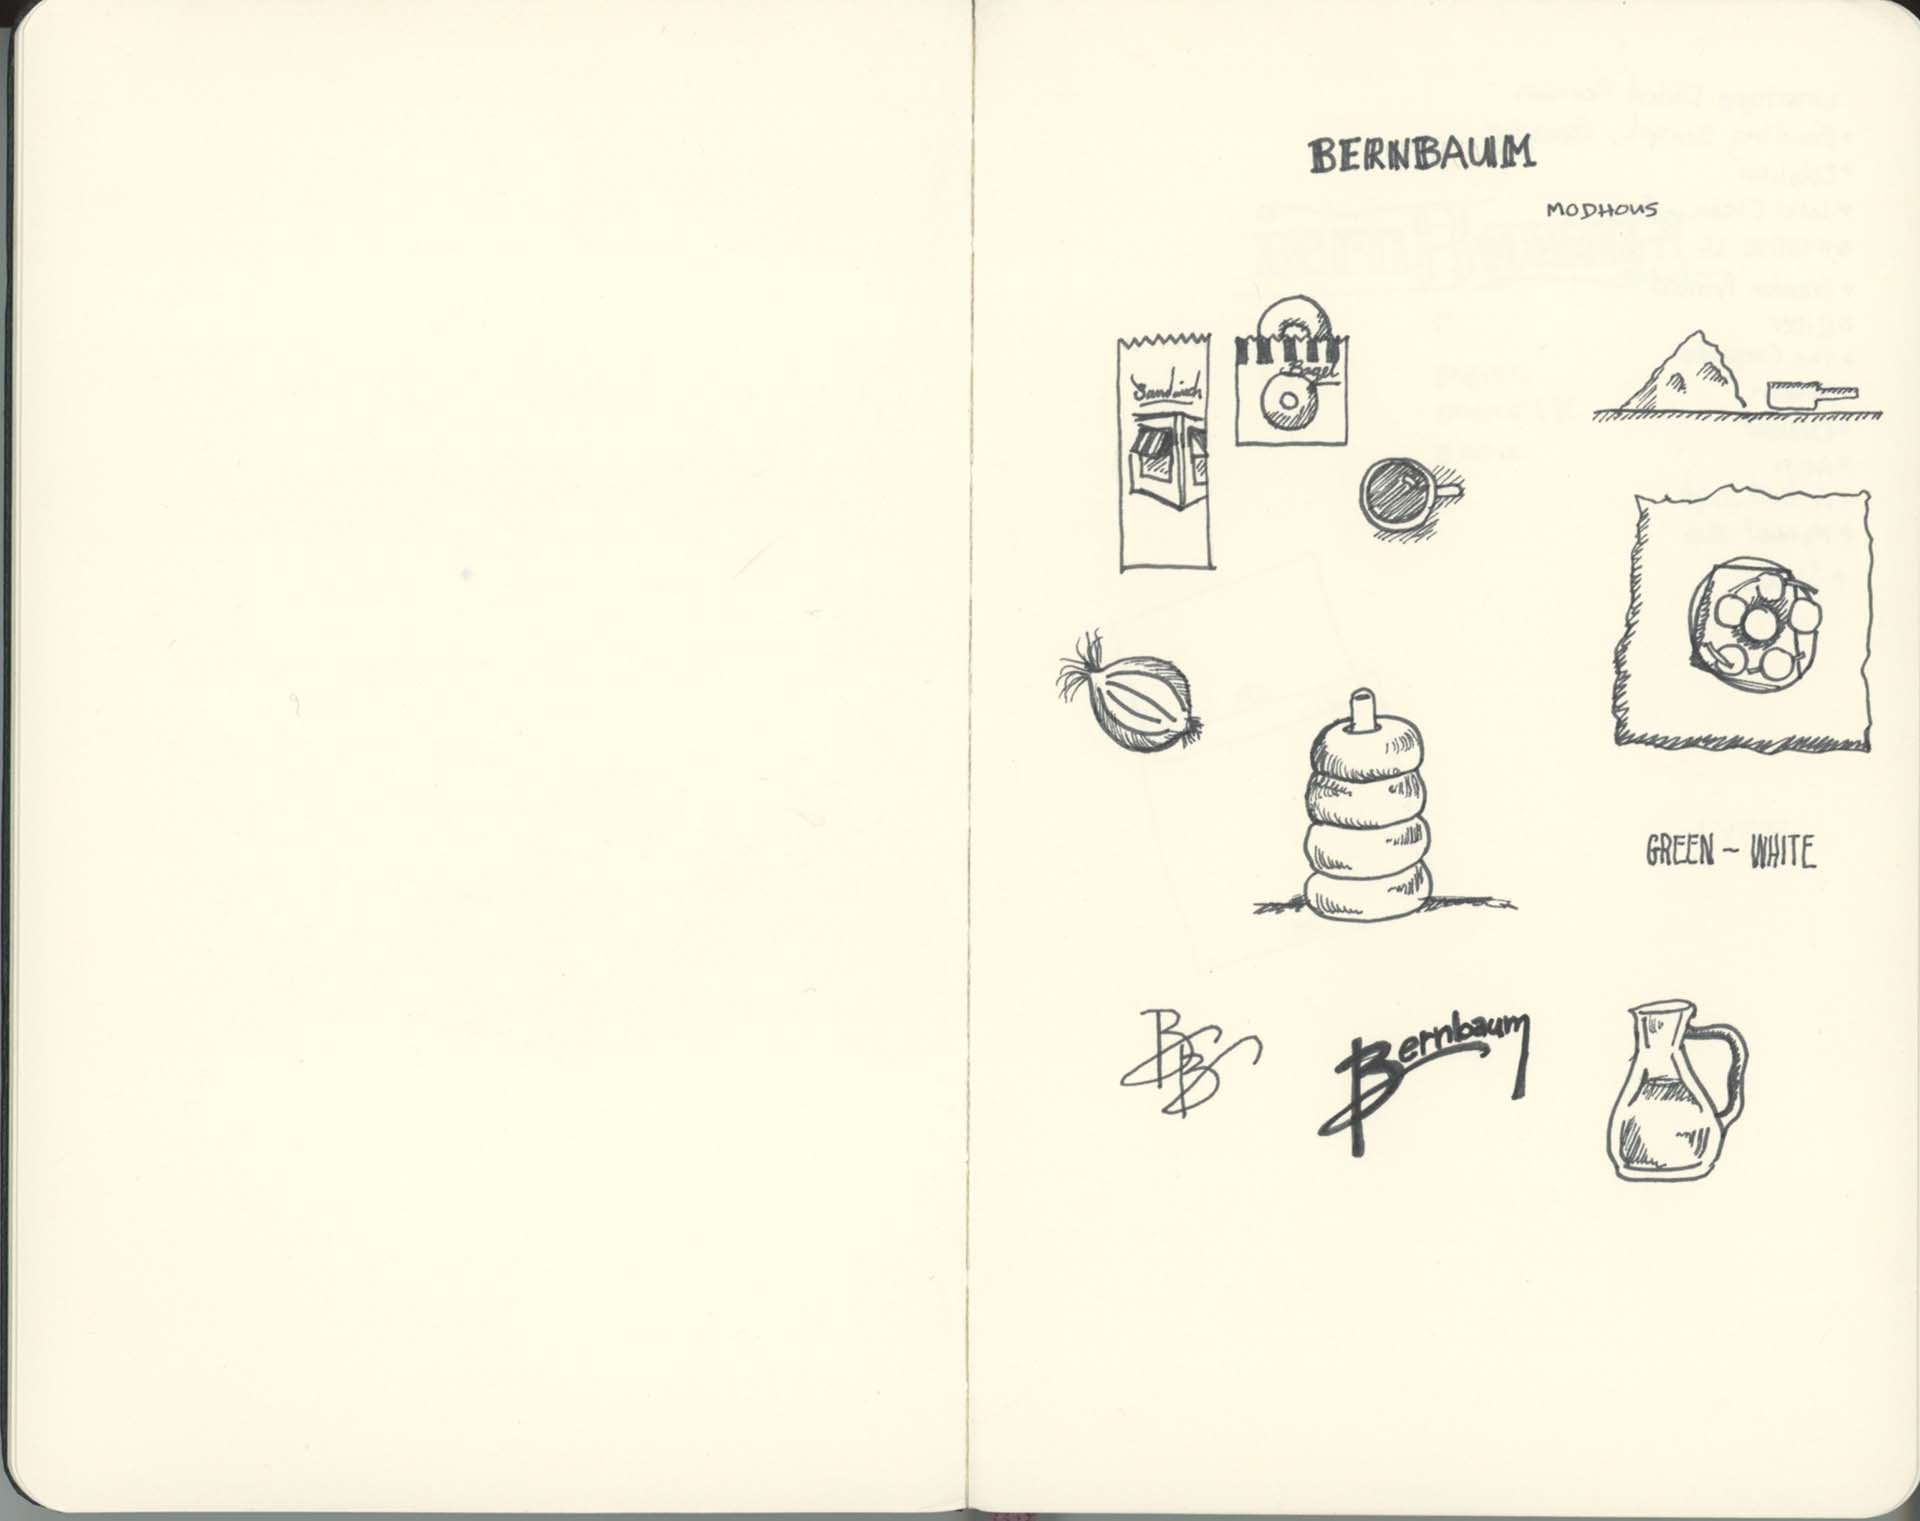 Scan of sketchbook pages containing illustrations of bagels and toppings